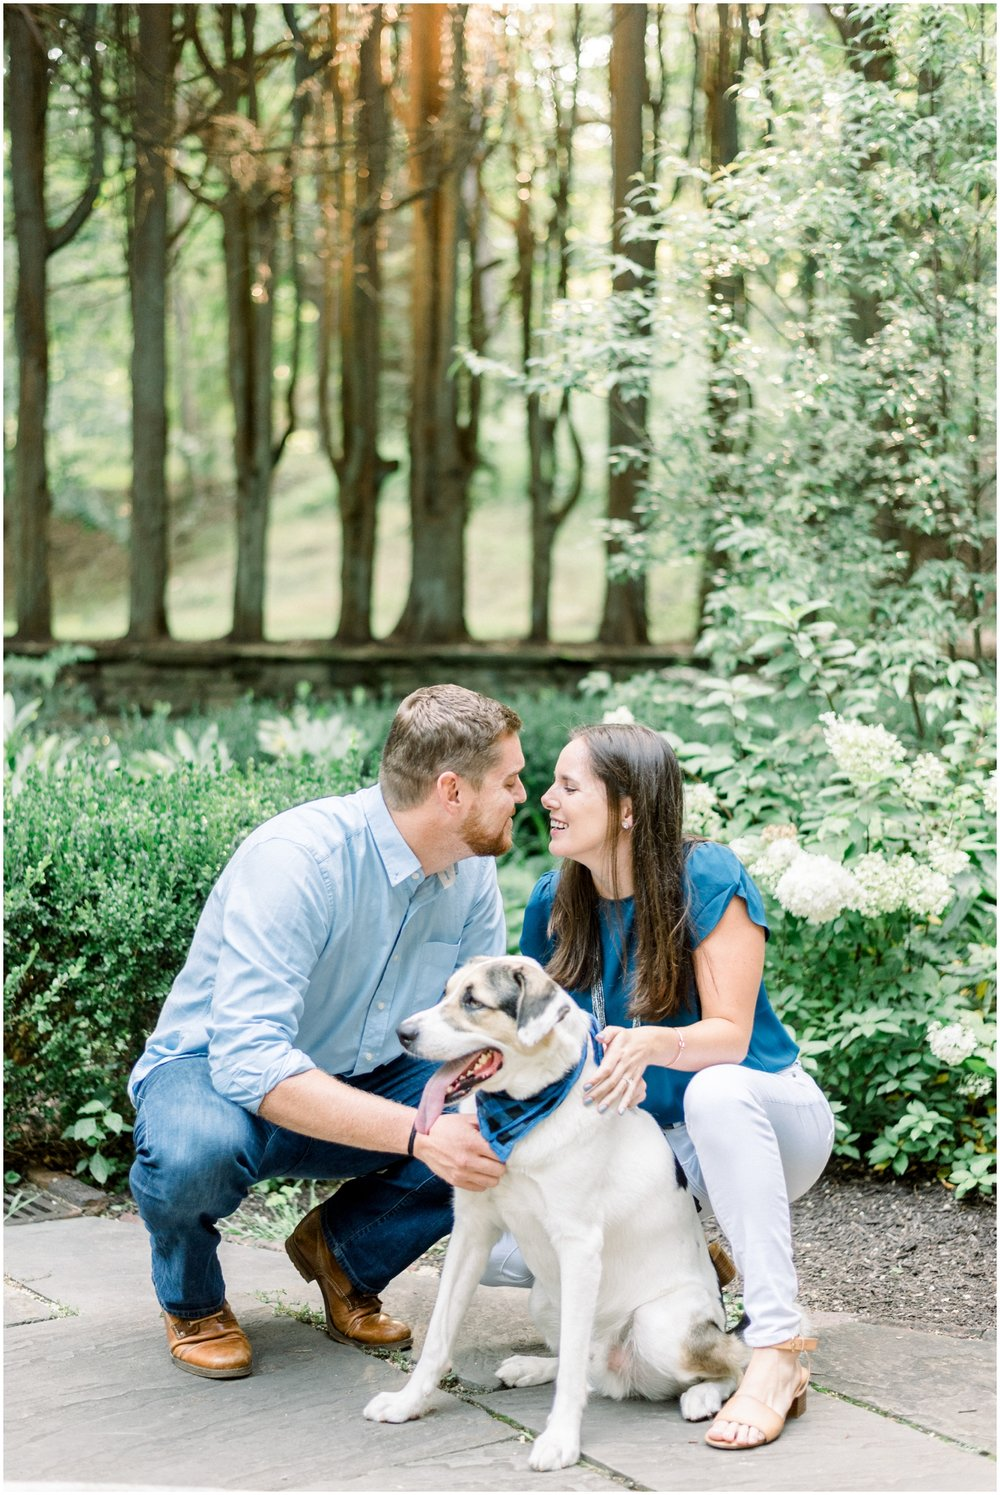 Summer Engagement Session at Hunting Hill Mansion - Krista Brackin Photography_0006.jpg